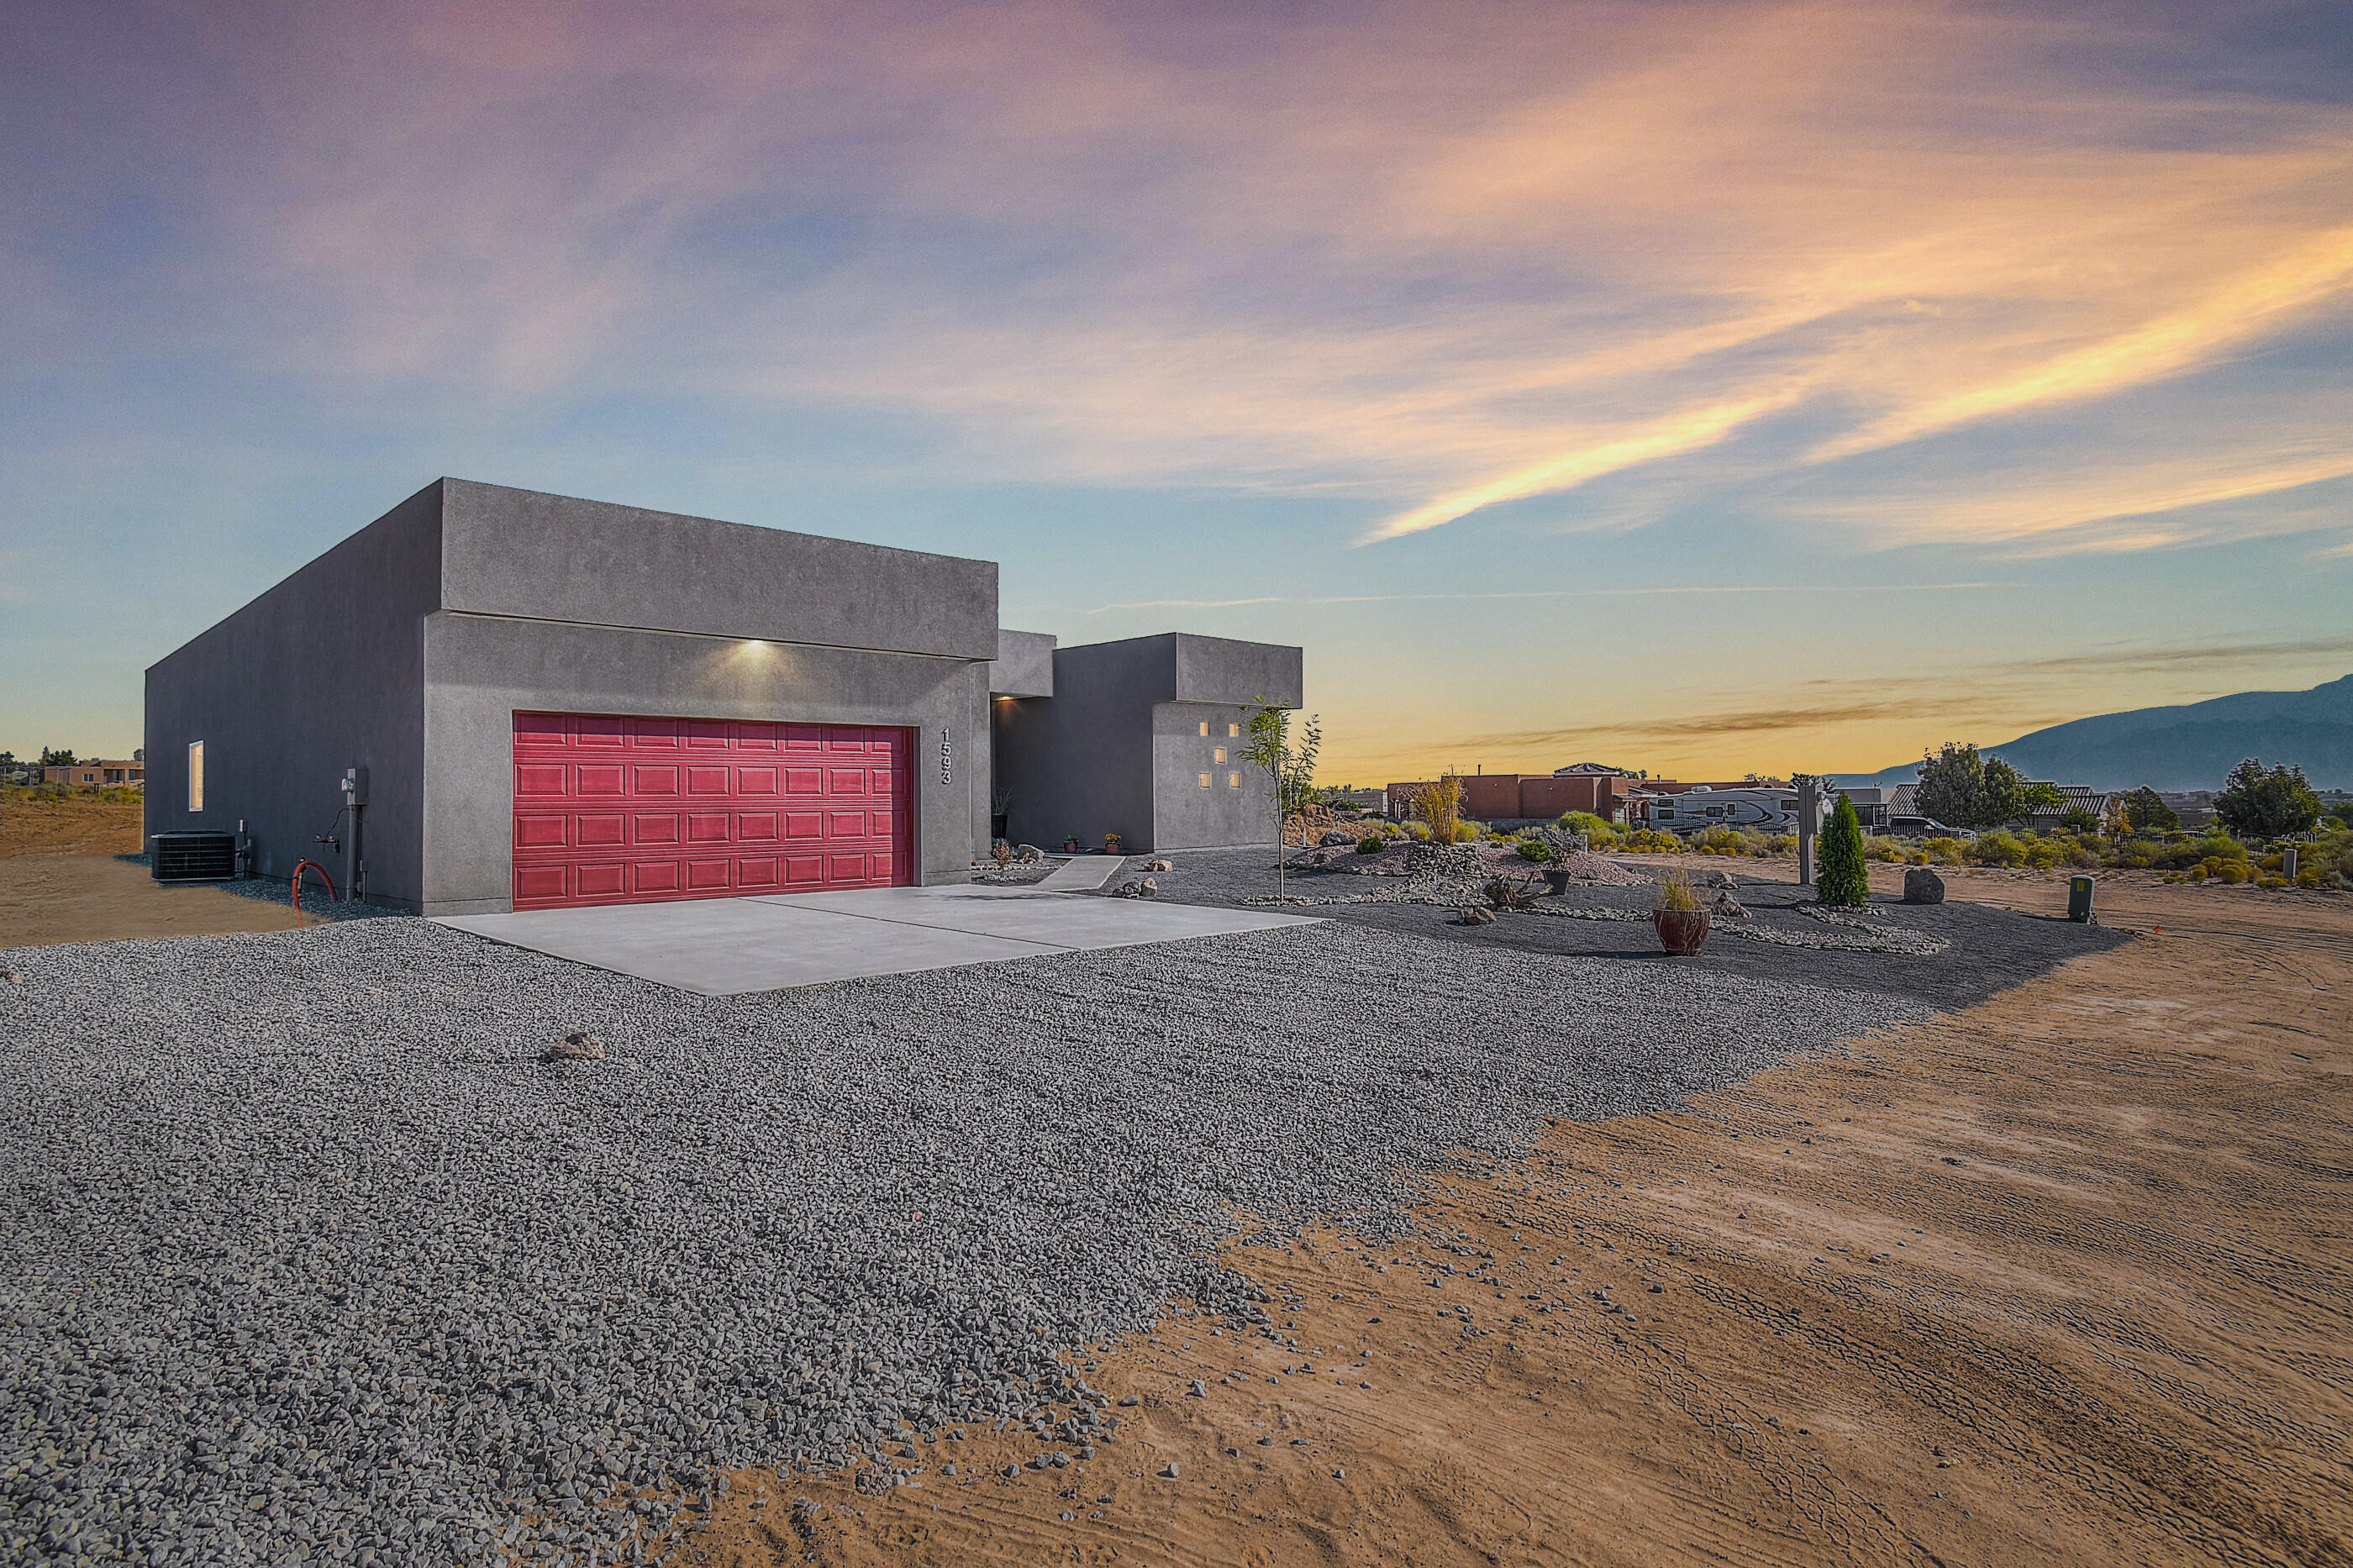 Contemporary multigeneration living!  Beautiful custom 4 bedroom 3 bath.  Featuring two master bedrooms, walk-in closets in every room, natural light in abundance with solar tubes, waterfall granite,  soft close cabinets, Kitchen opens to great room, custom title fireplace, sitting on a large .5 acre lot, side yard access.